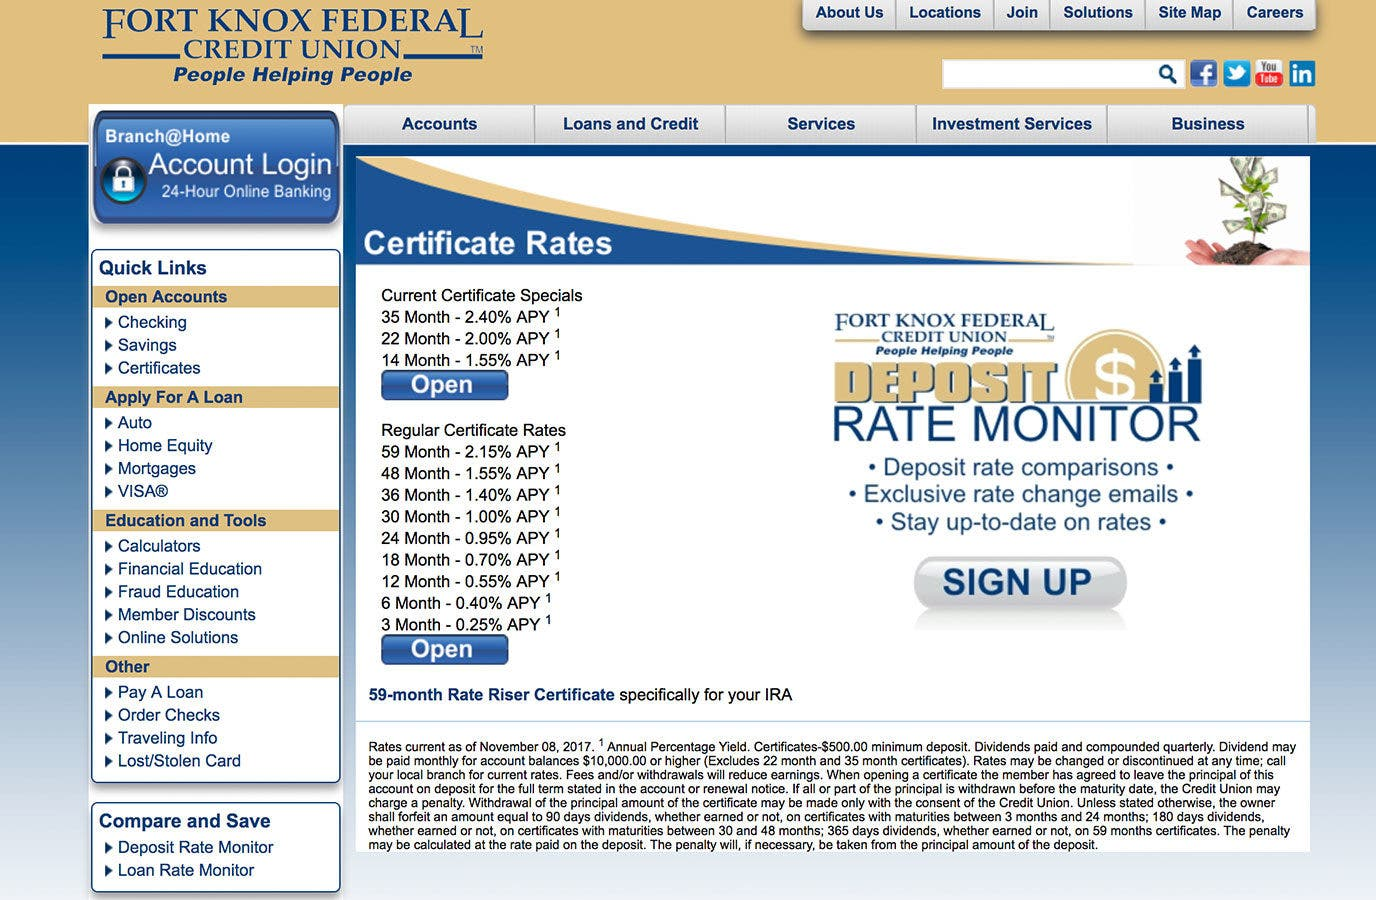 Want the countrys best 3 year cd rate heres where to apply want the countrys best 3 year cd rate heres where to apply bankrate xflitez Choice Image